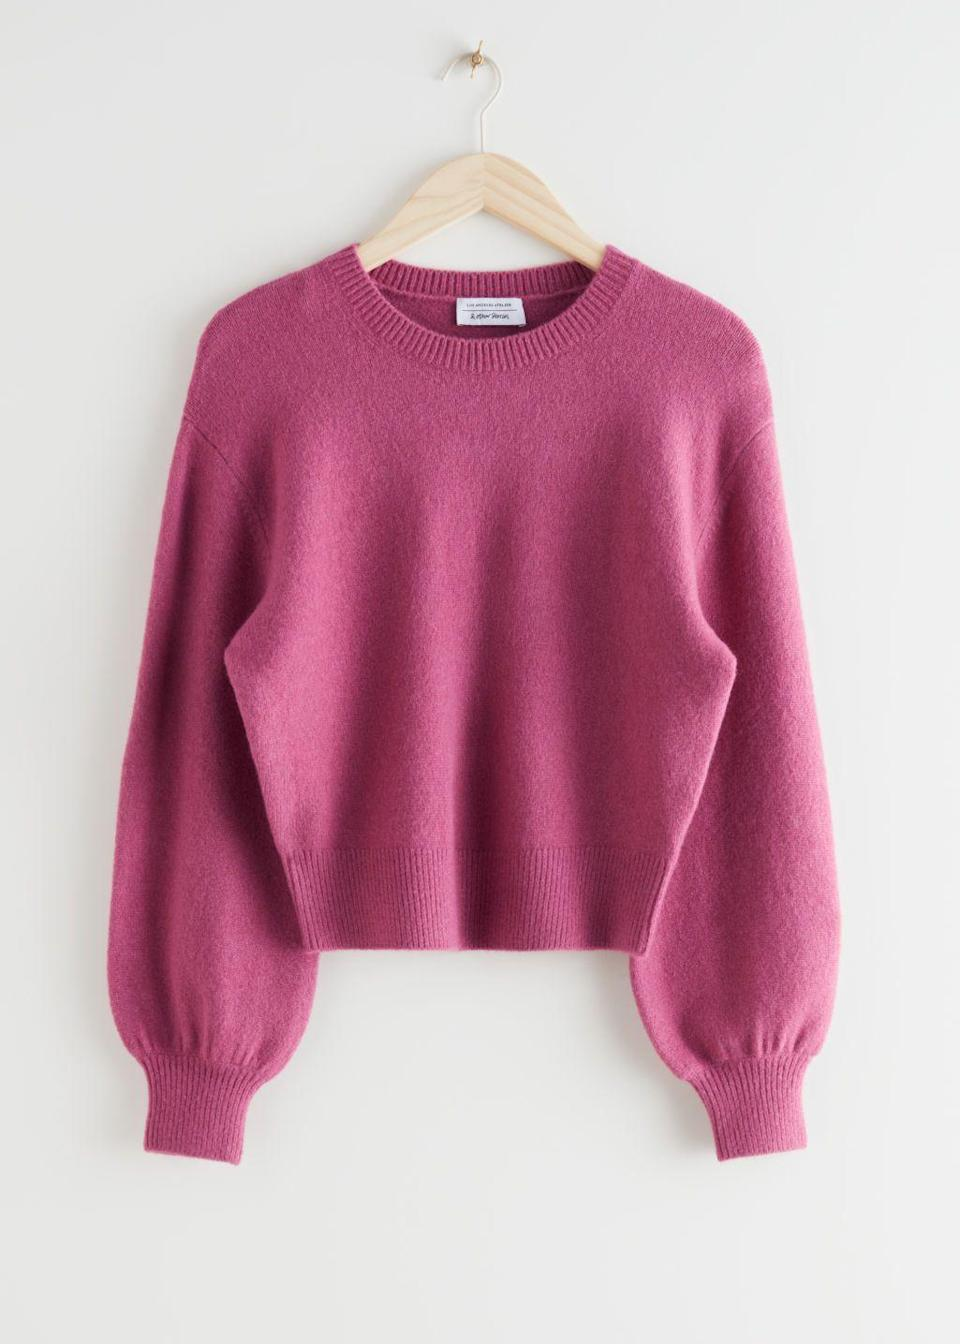 """<p>Color rosa fragola, il maglione girocollo di<strong> & Other Stories </strong>dal fit rilassato.</p><p><a class=""""link rapid-noclick-resp"""" href=""""https://www.stories.com/en_eur/clothing/knitwear/sweaters/product.relaxed-sweater-red.0617627029.html"""" rel=""""nofollow noopener"""" target=""""_blank"""" data-ylk=""""slk:39 euro su Stories.com"""">39 euro su Stories.com</a></p>"""